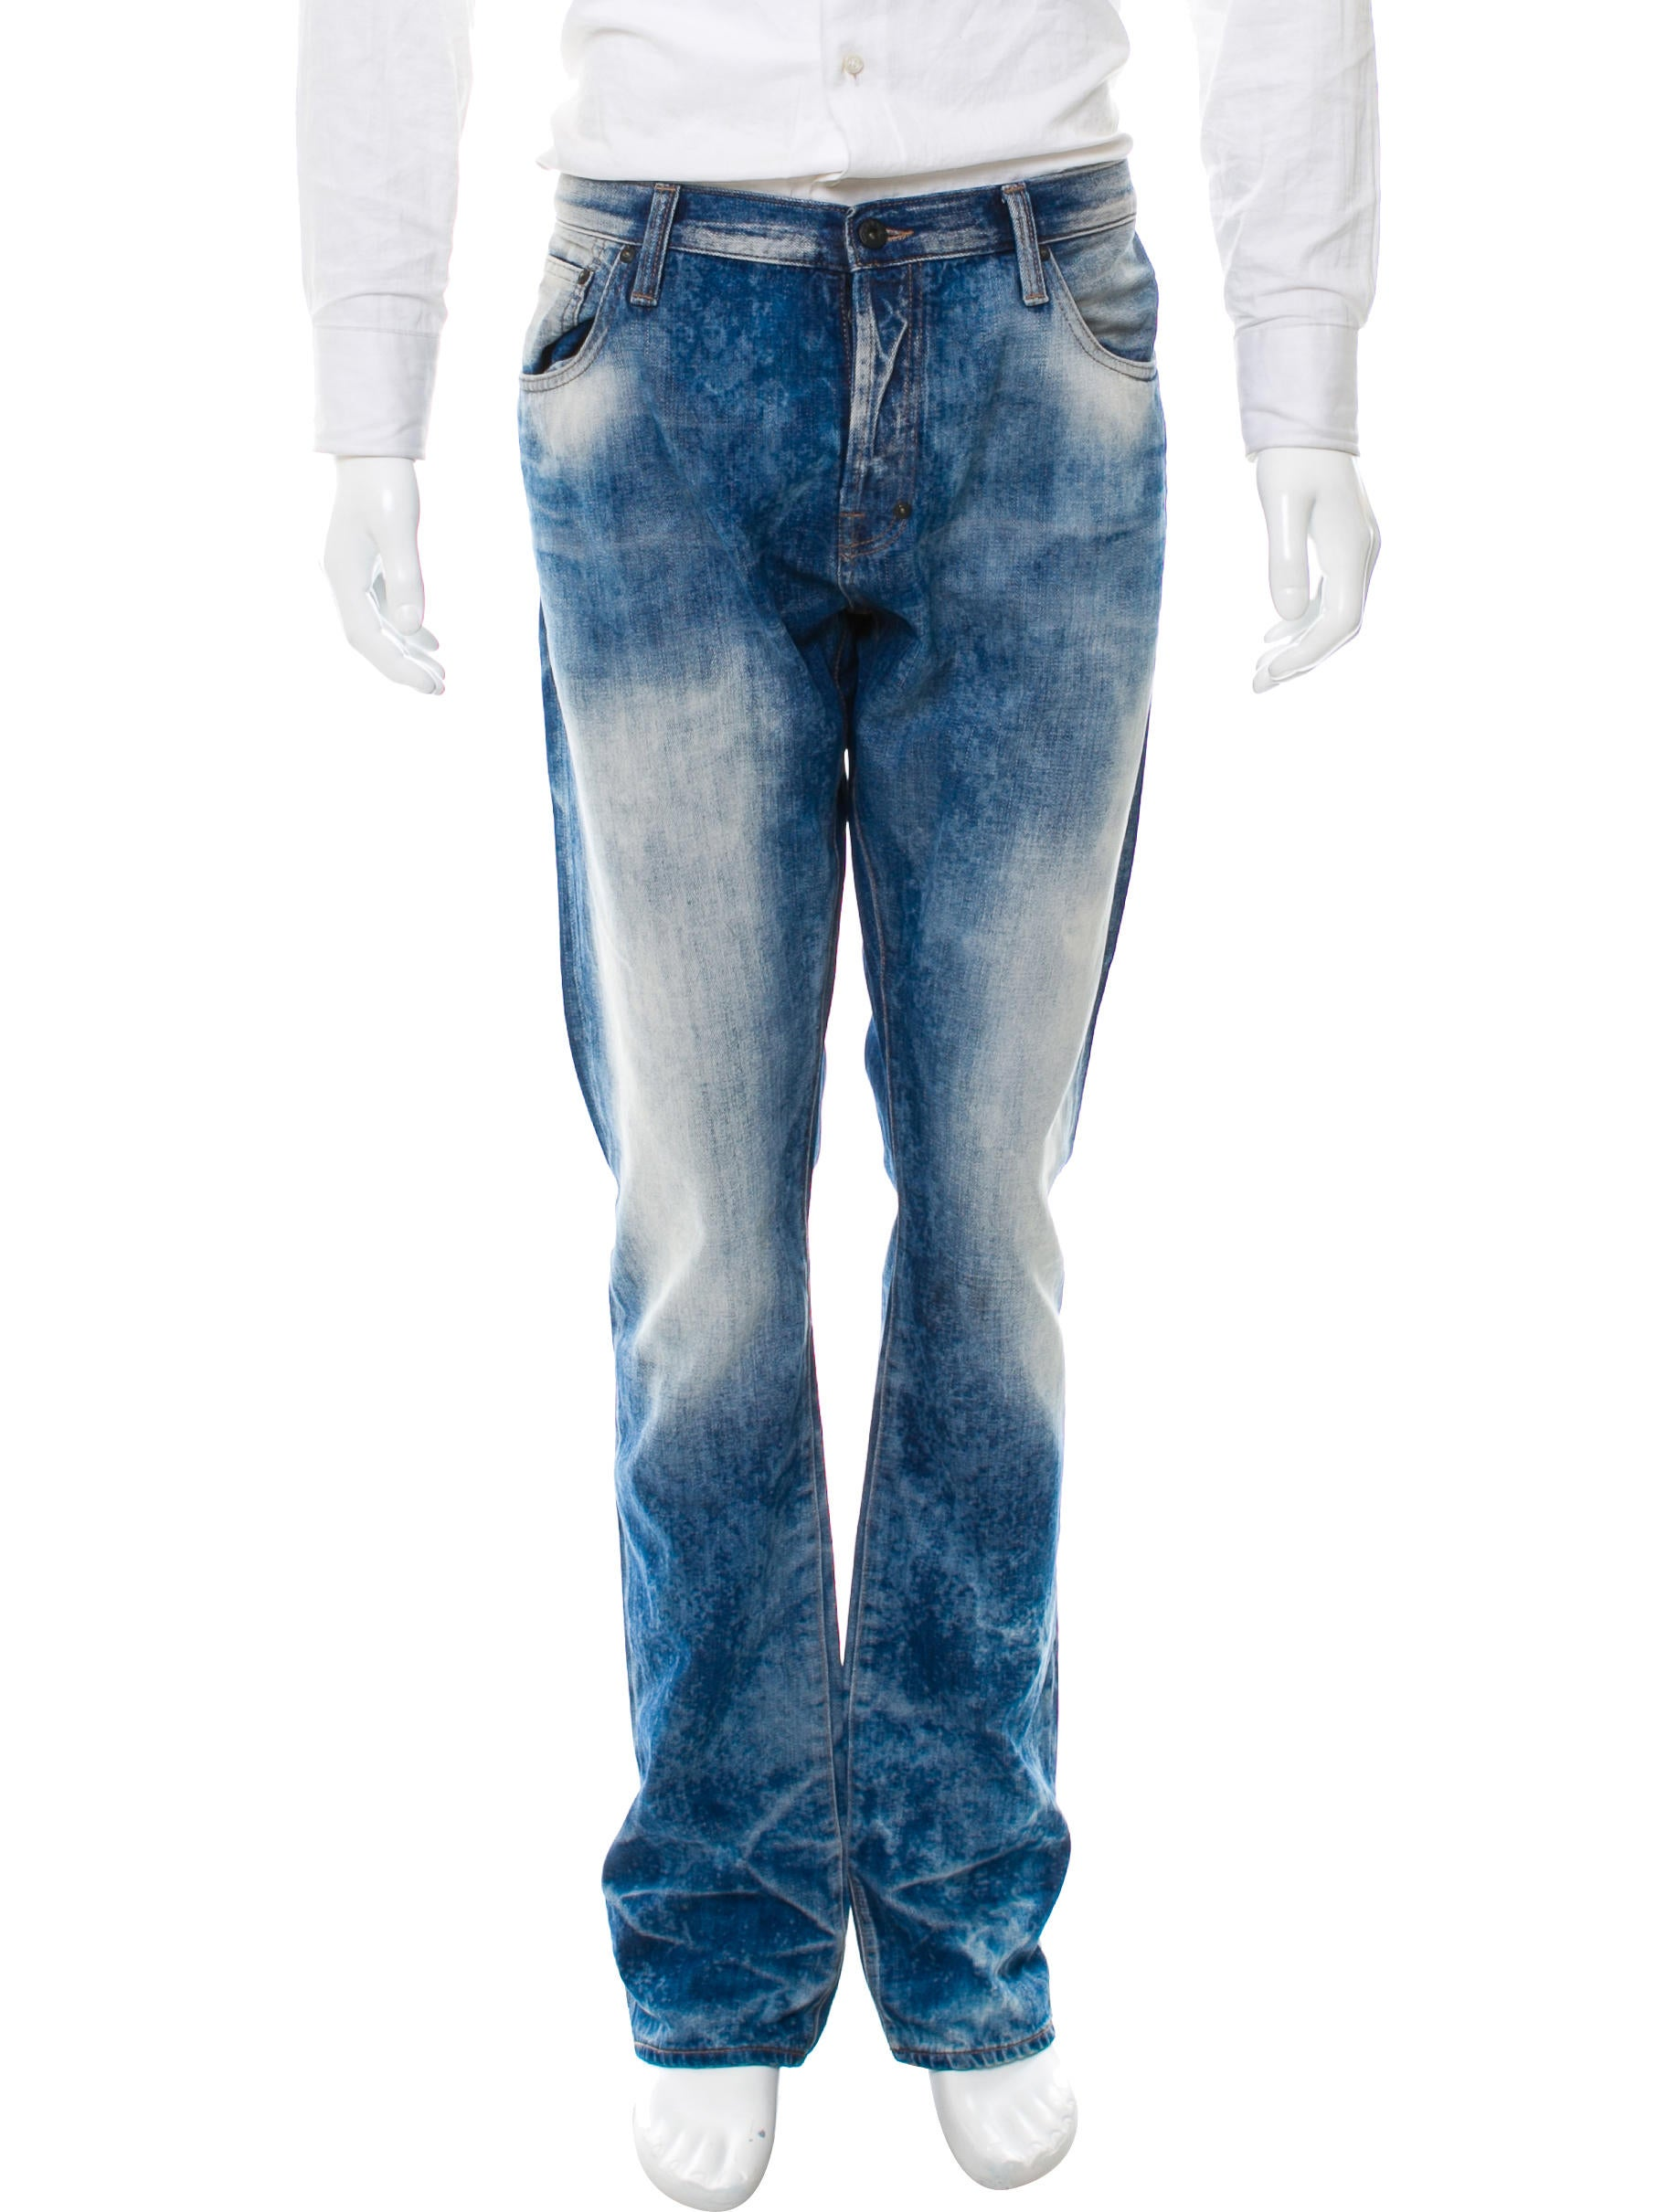 how to make acid wash jeans